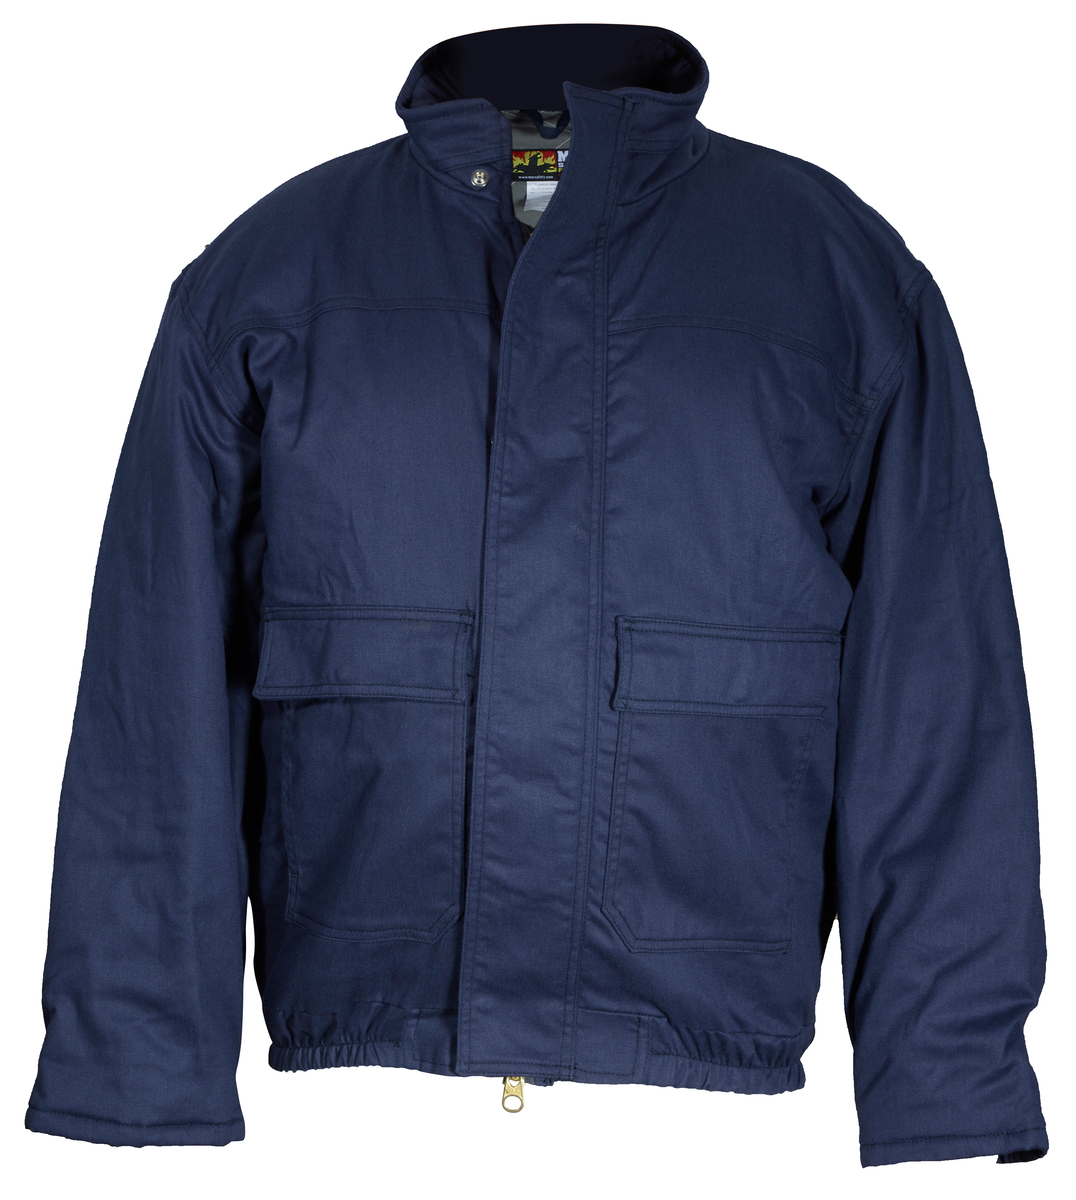 Flame Resistant (FR) Insulated Bomber Jacket, Max Comfort ™ Material, Modacrylic quilted lining, Navy